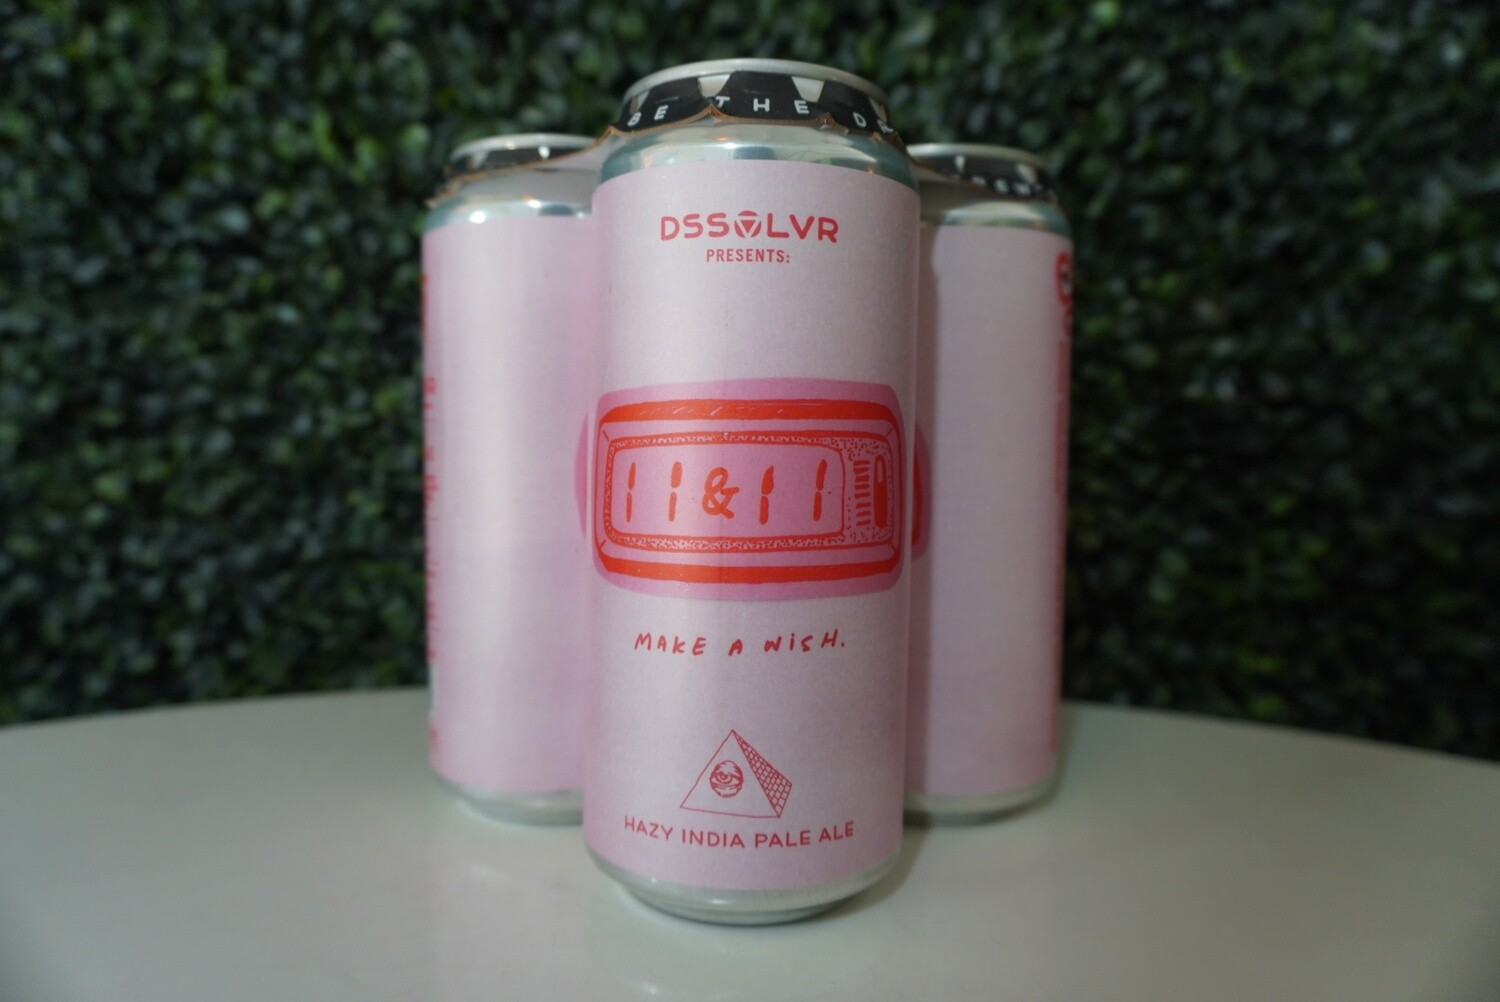 DSSOLVR - 11 & 11 - New England IPA - 7.5% ABV - 4 Pack